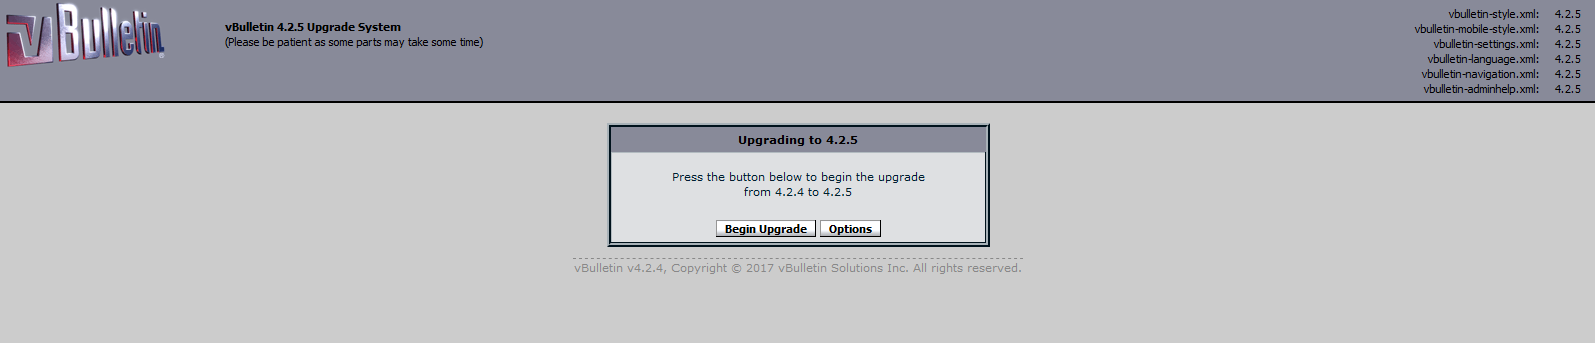 Come fare l'upgrade di vBulletin 4